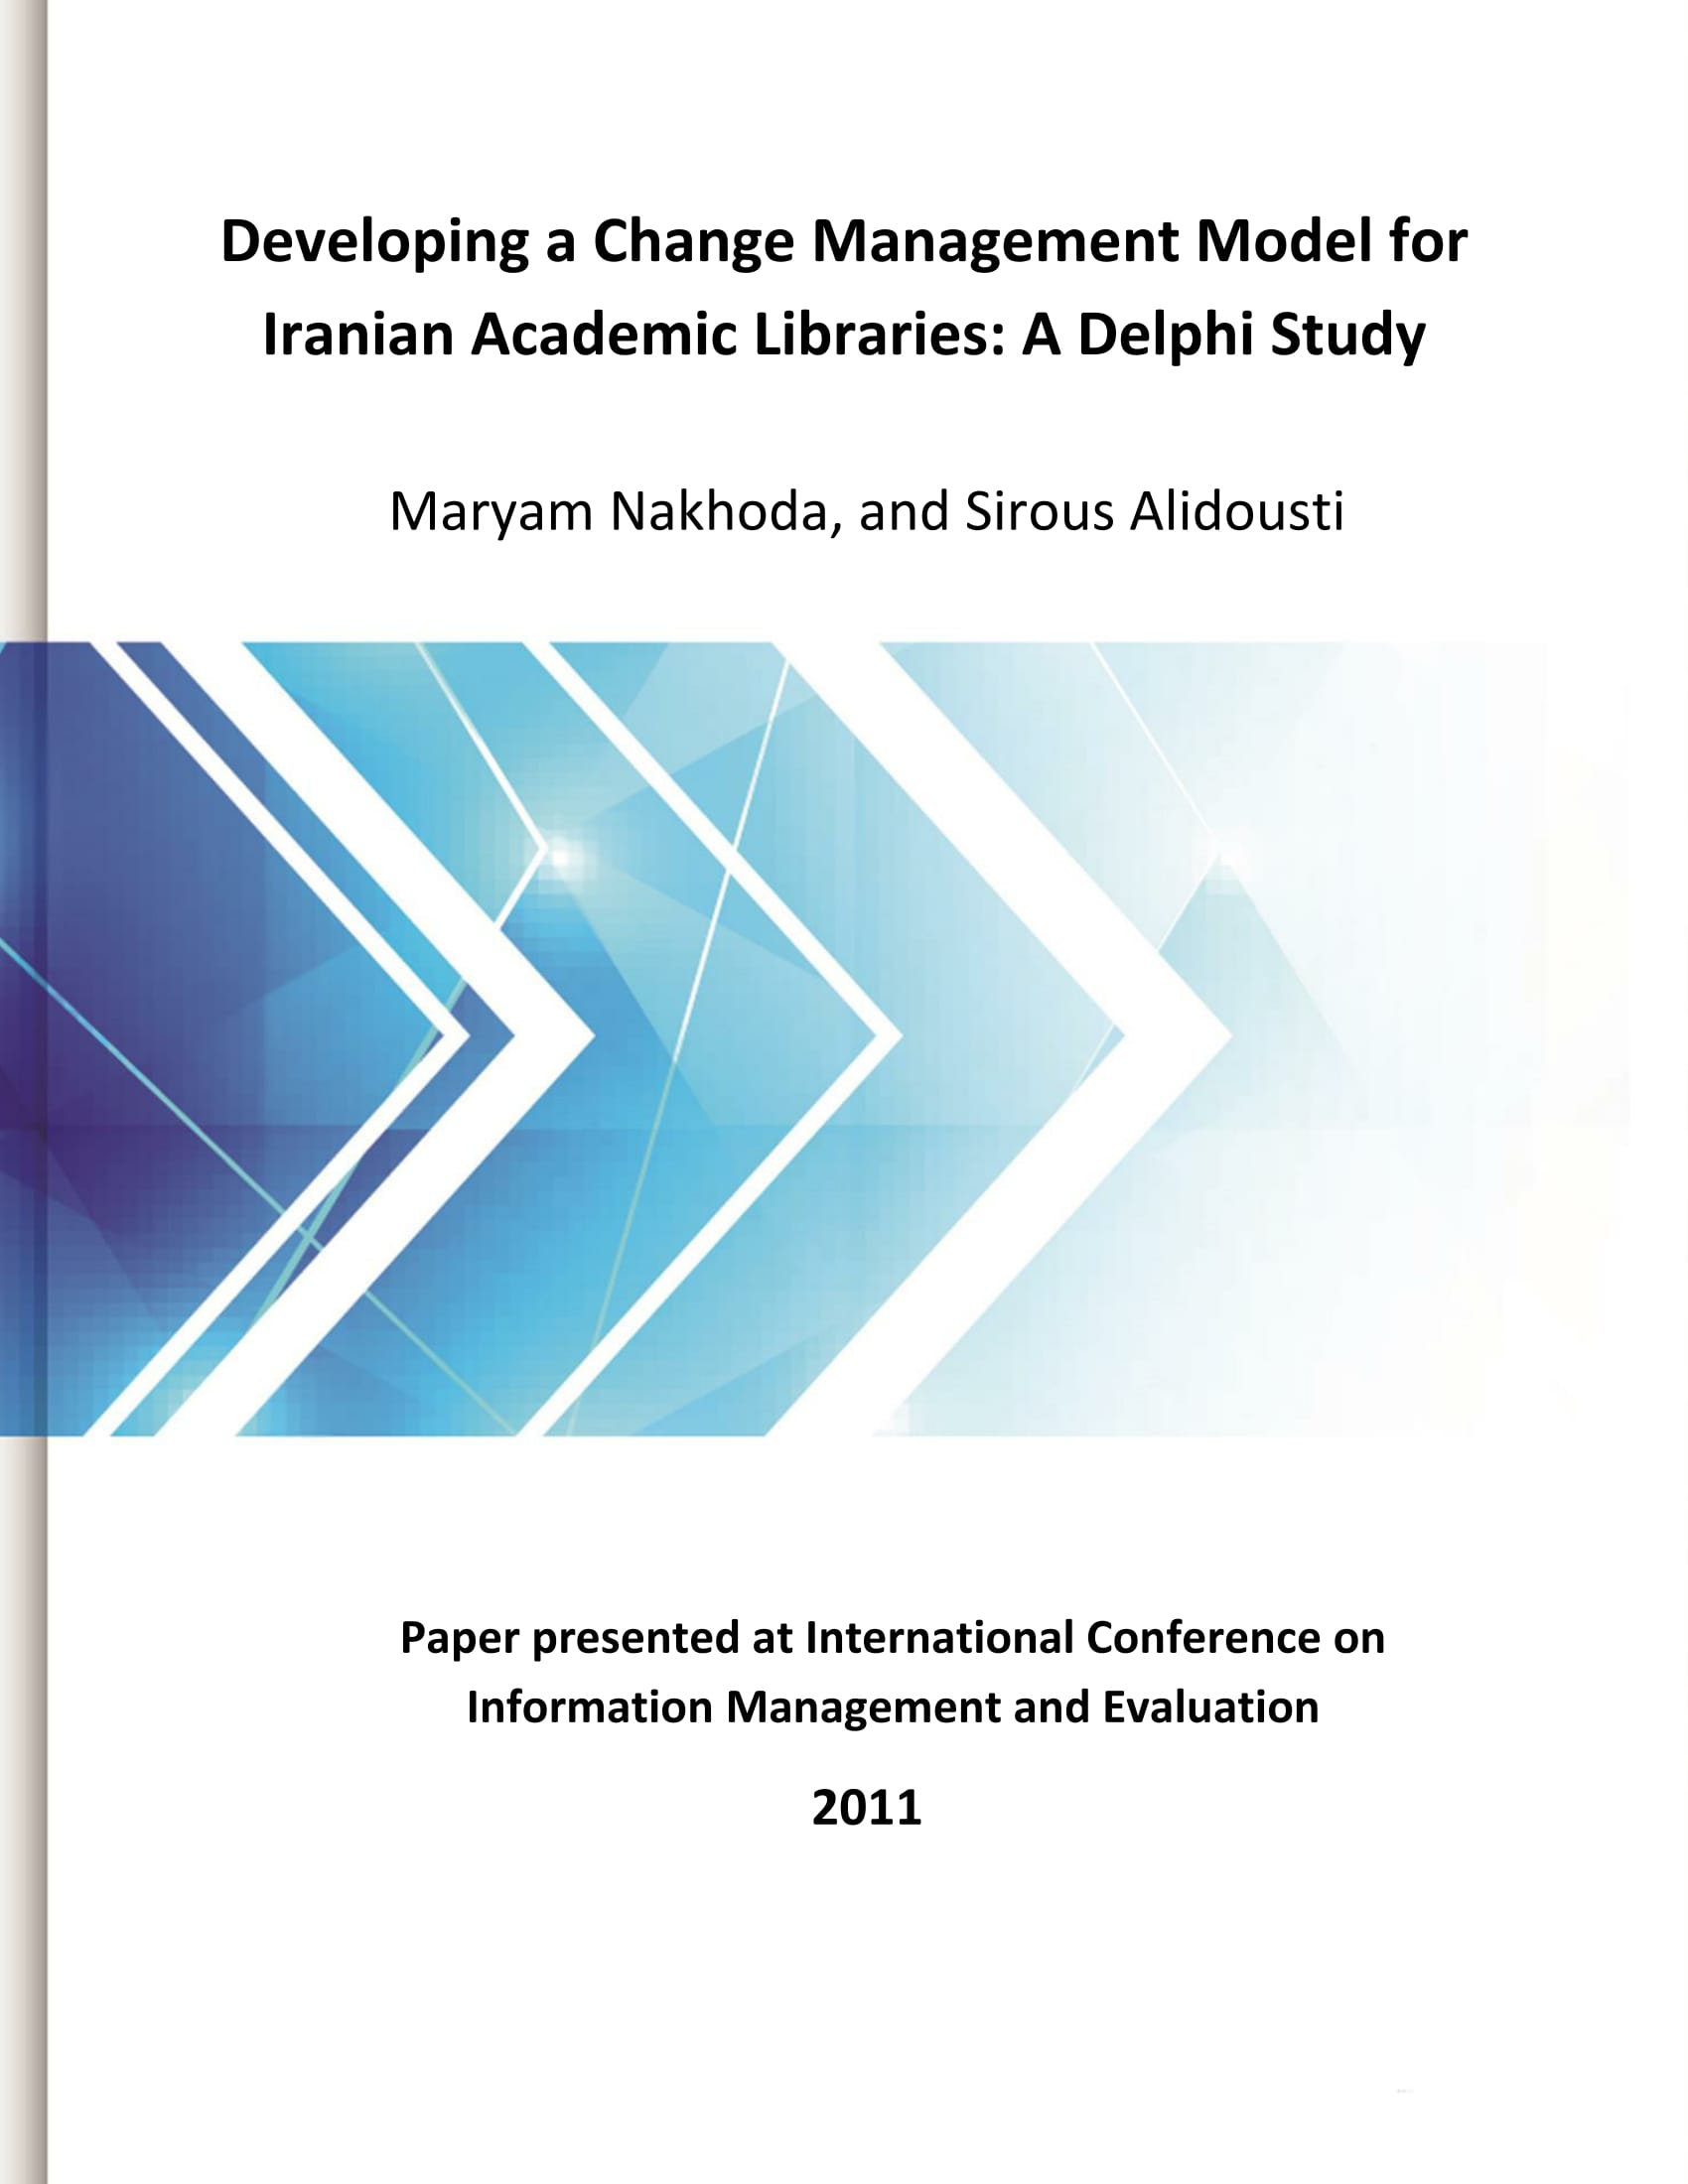 Developing a Change Management Model for Iranian Academic Libraries: A Delphi Study